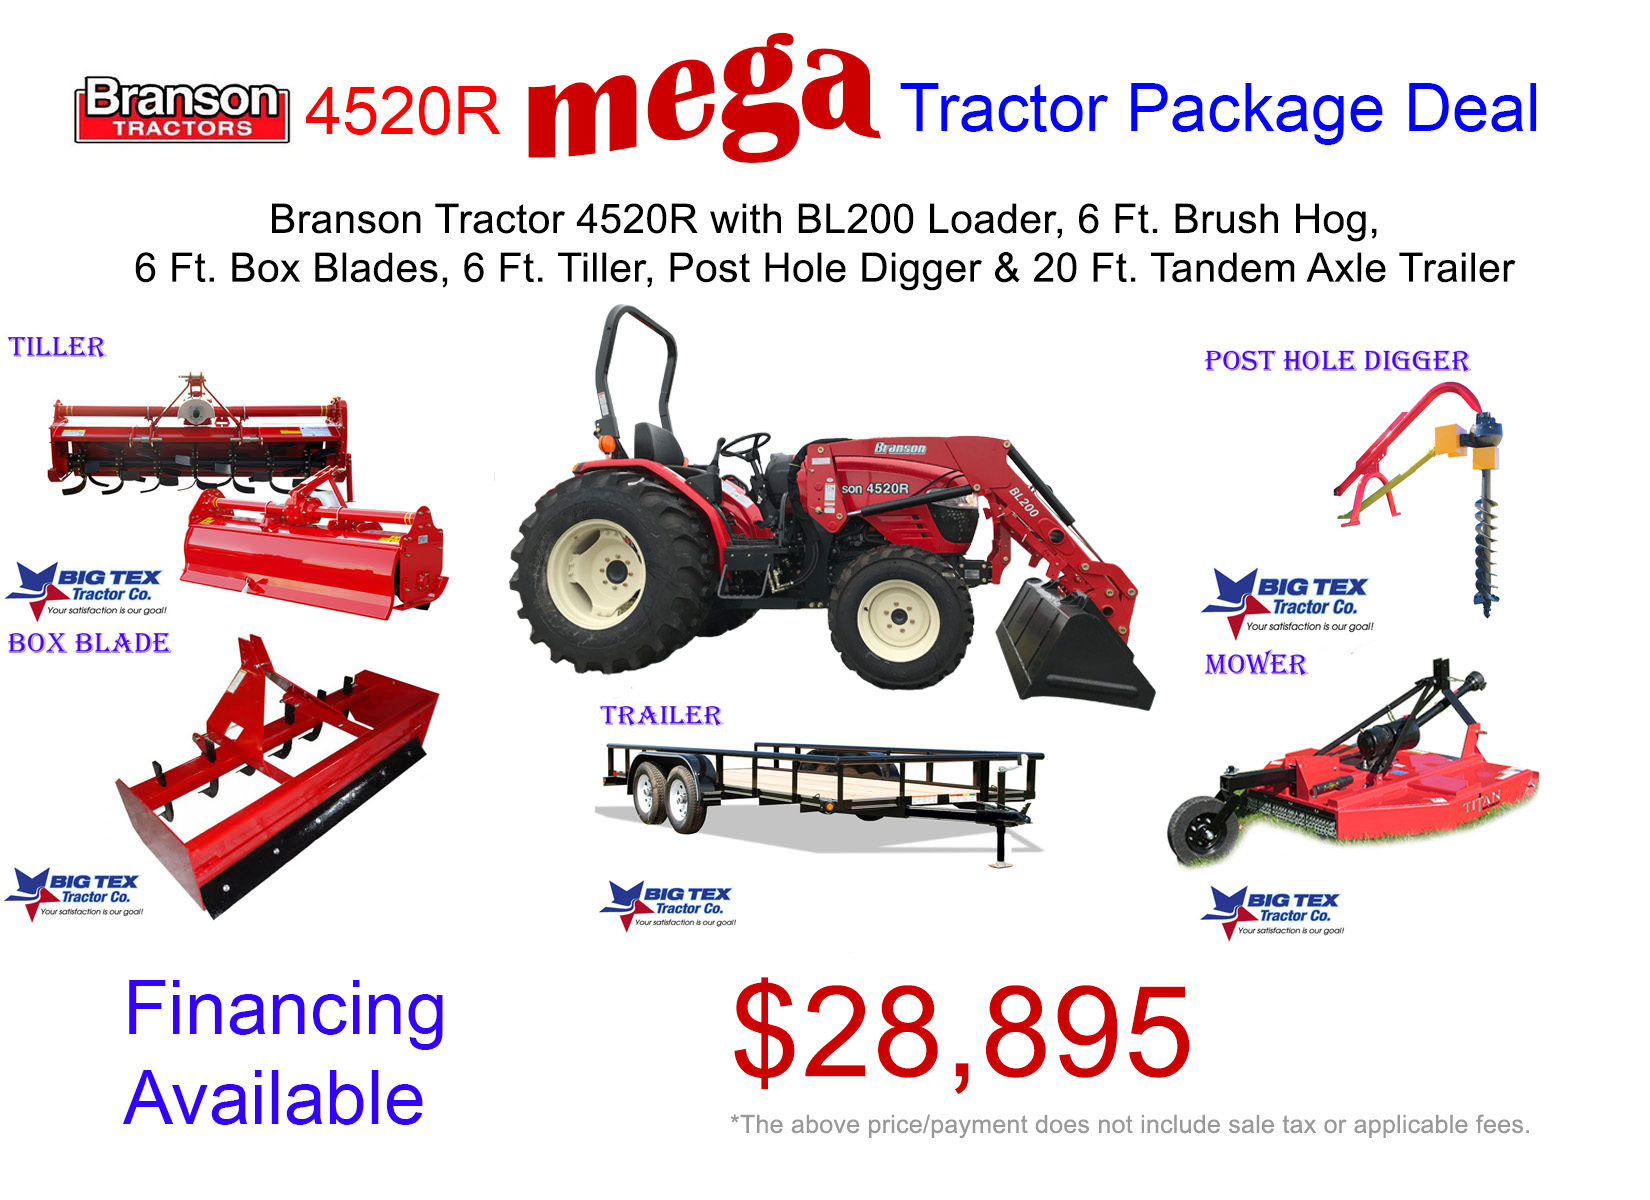 Branson 4520R Mega Tractor Package Deal  28895